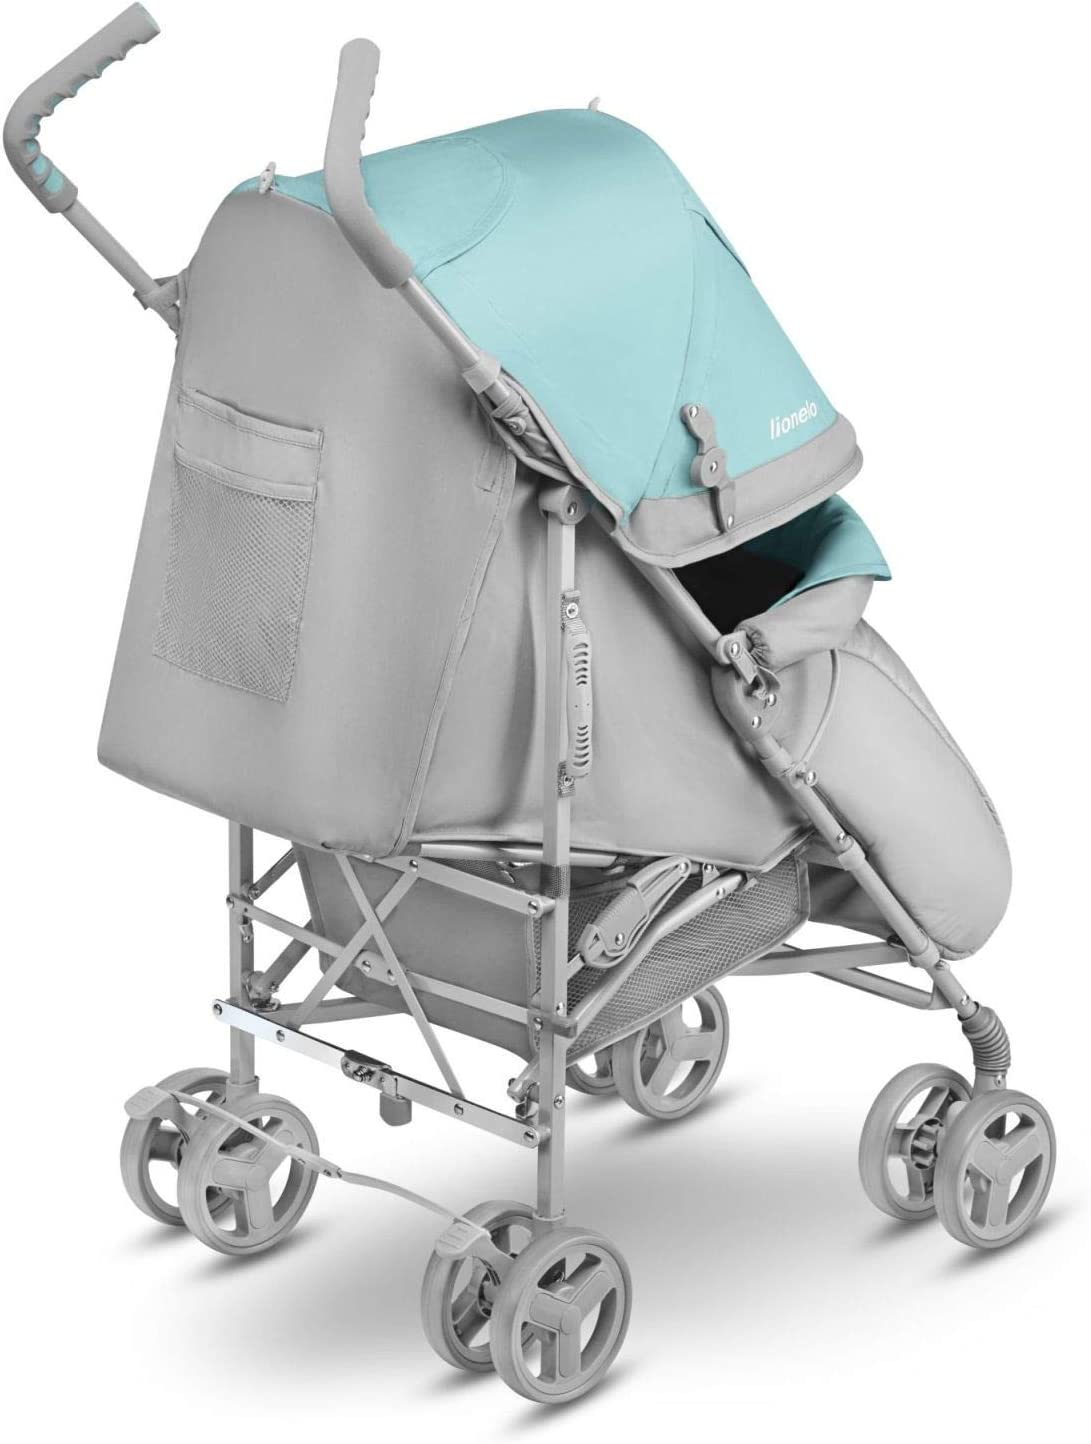 Lionelo Elia Buggy Small Folding Stroller from 6 Months to 15 kg Heavy Duty Mosquito Net Foot Cover Rain Cover